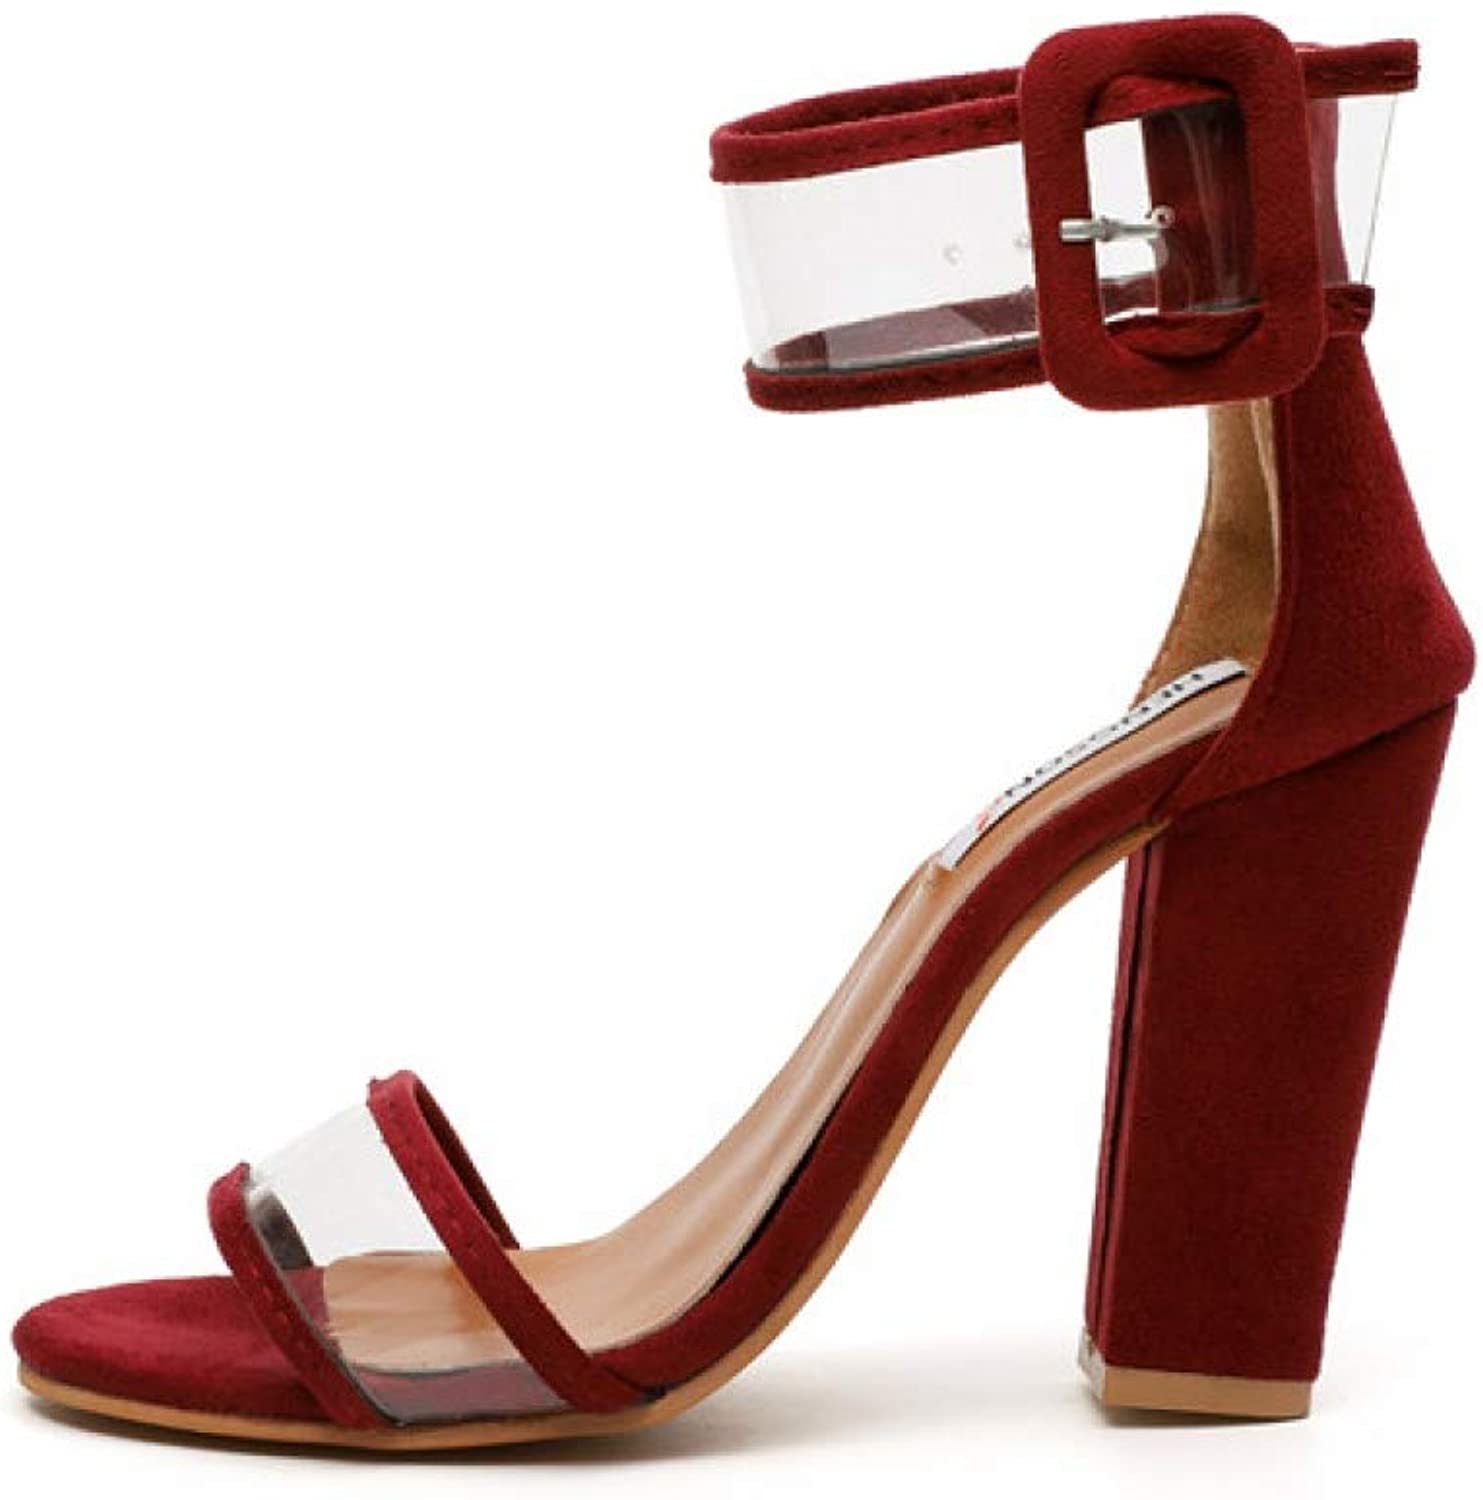 Women's Block Heeled Sandals Summer Fashion Ladies High Heels Transparent Ankle Buckle shoes